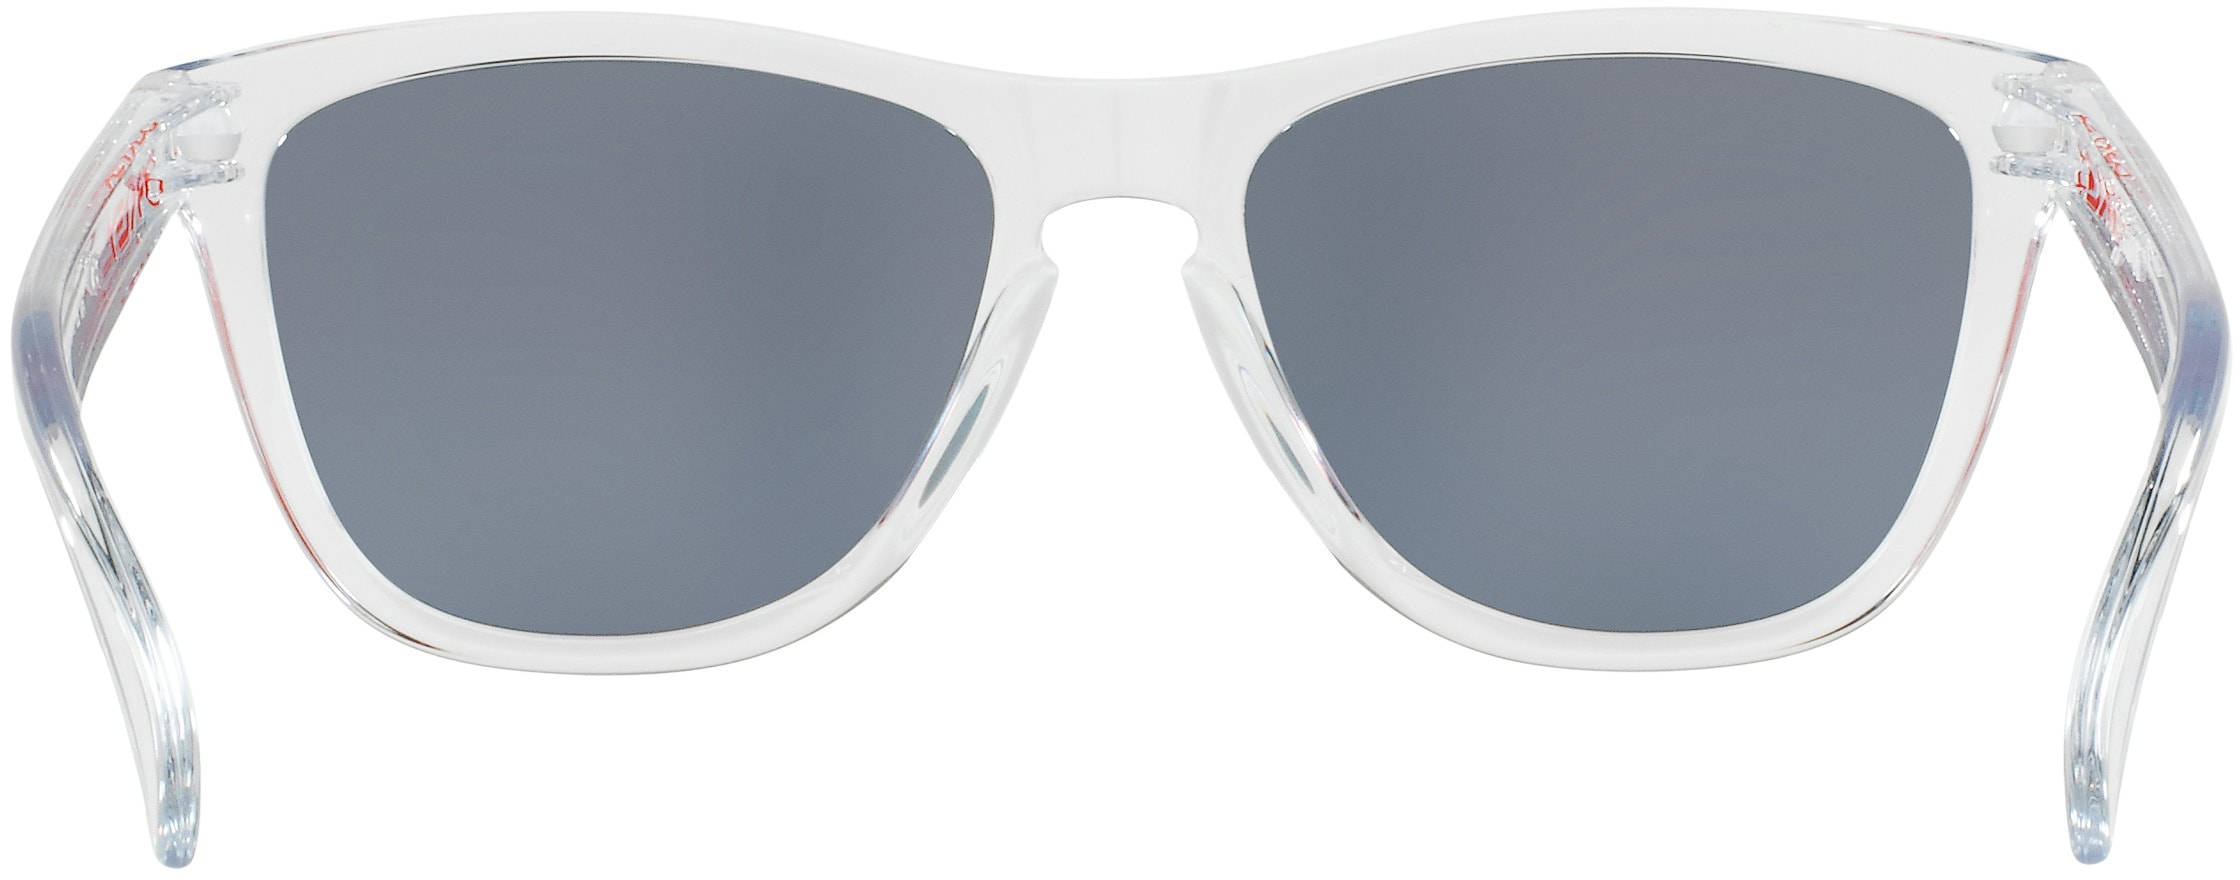 c39031da0a0 Oakley Frogskins Crystal Collection Sunglasses - thumbnail 3